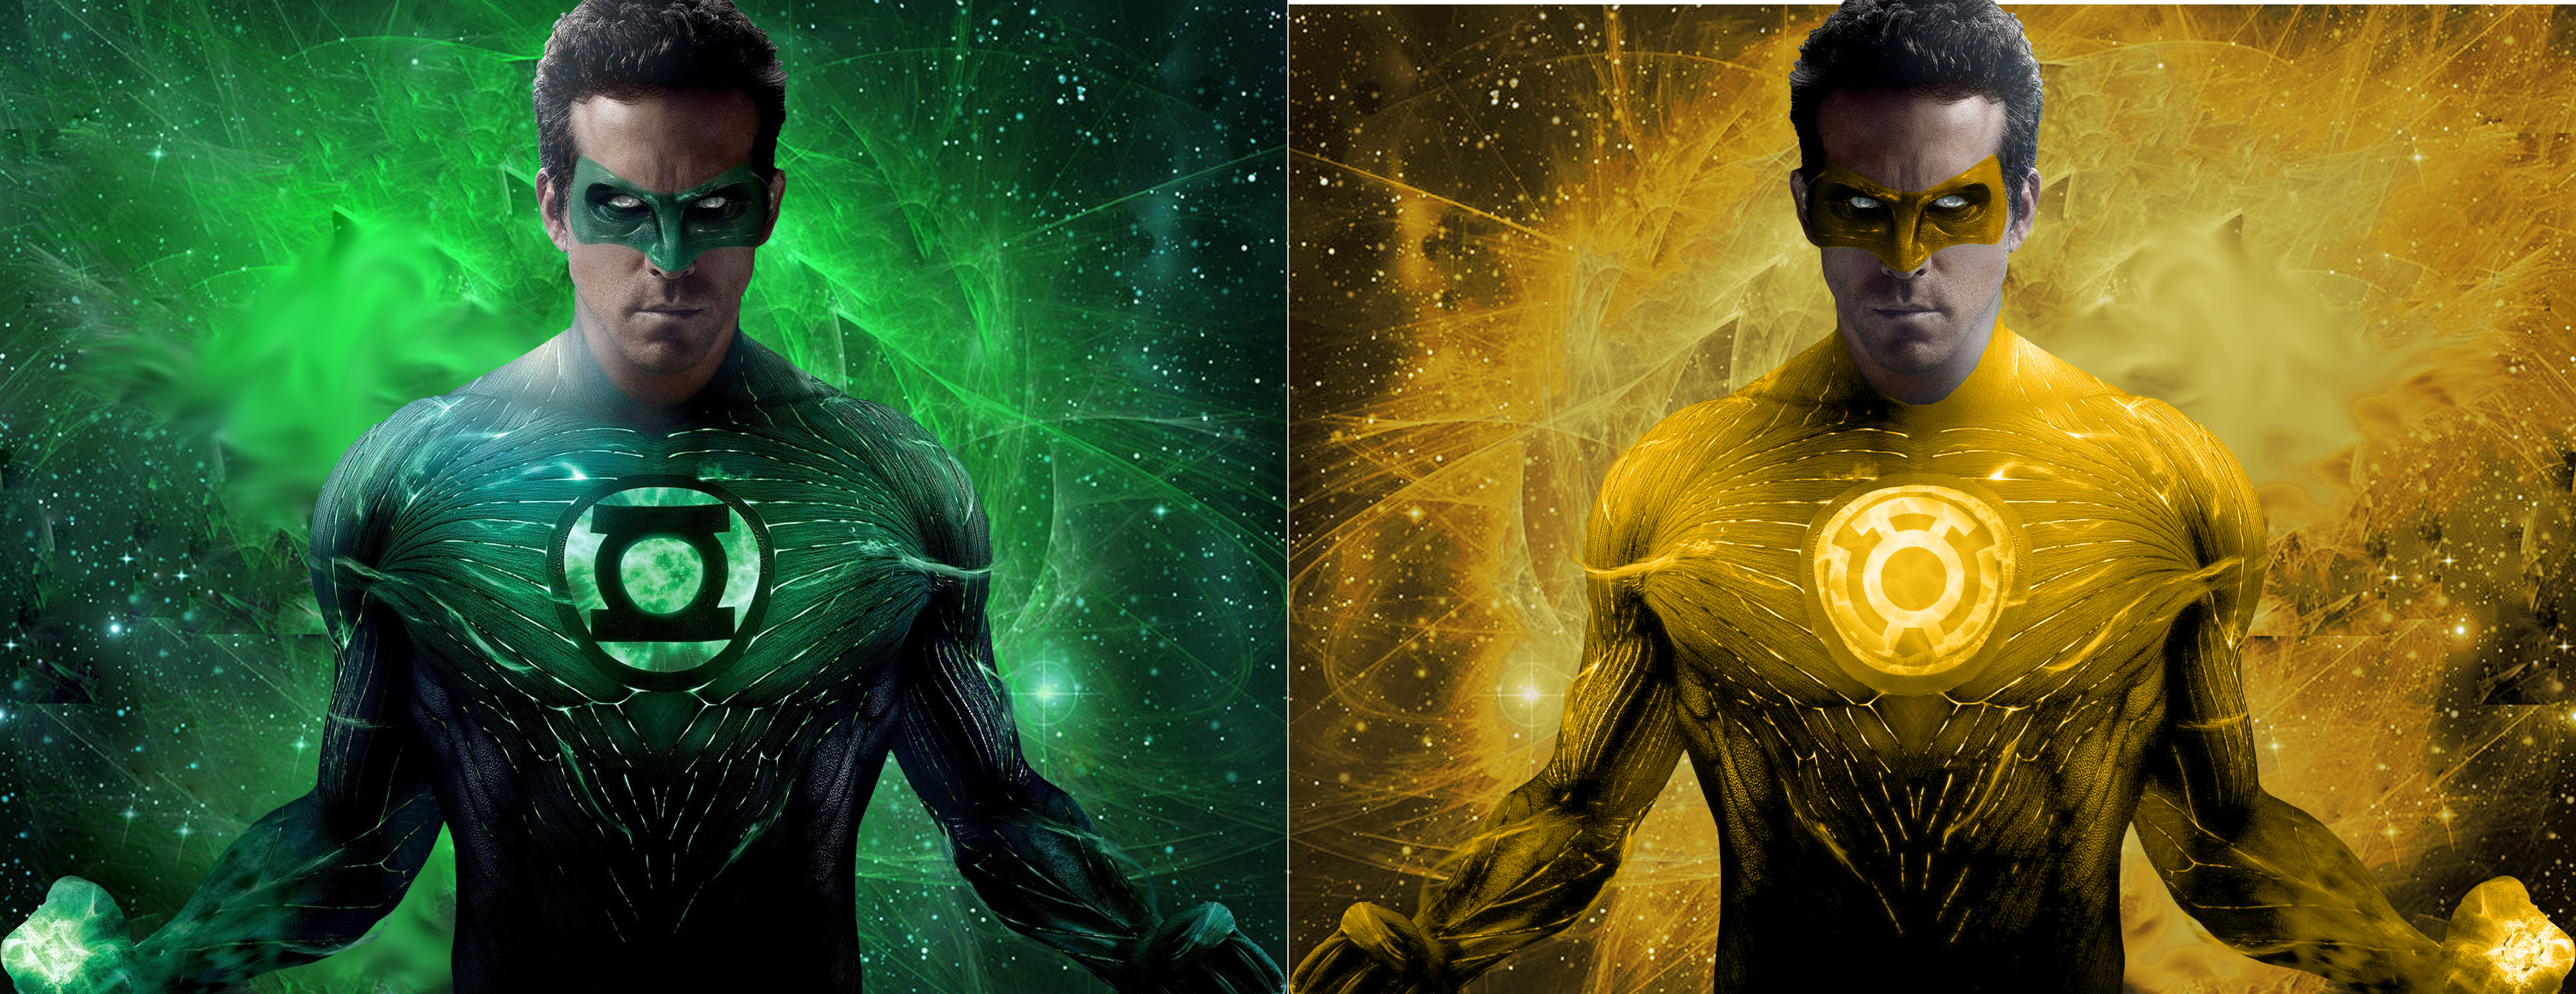 Costume Changes Green Lantern Sinestro By Cthebeast123